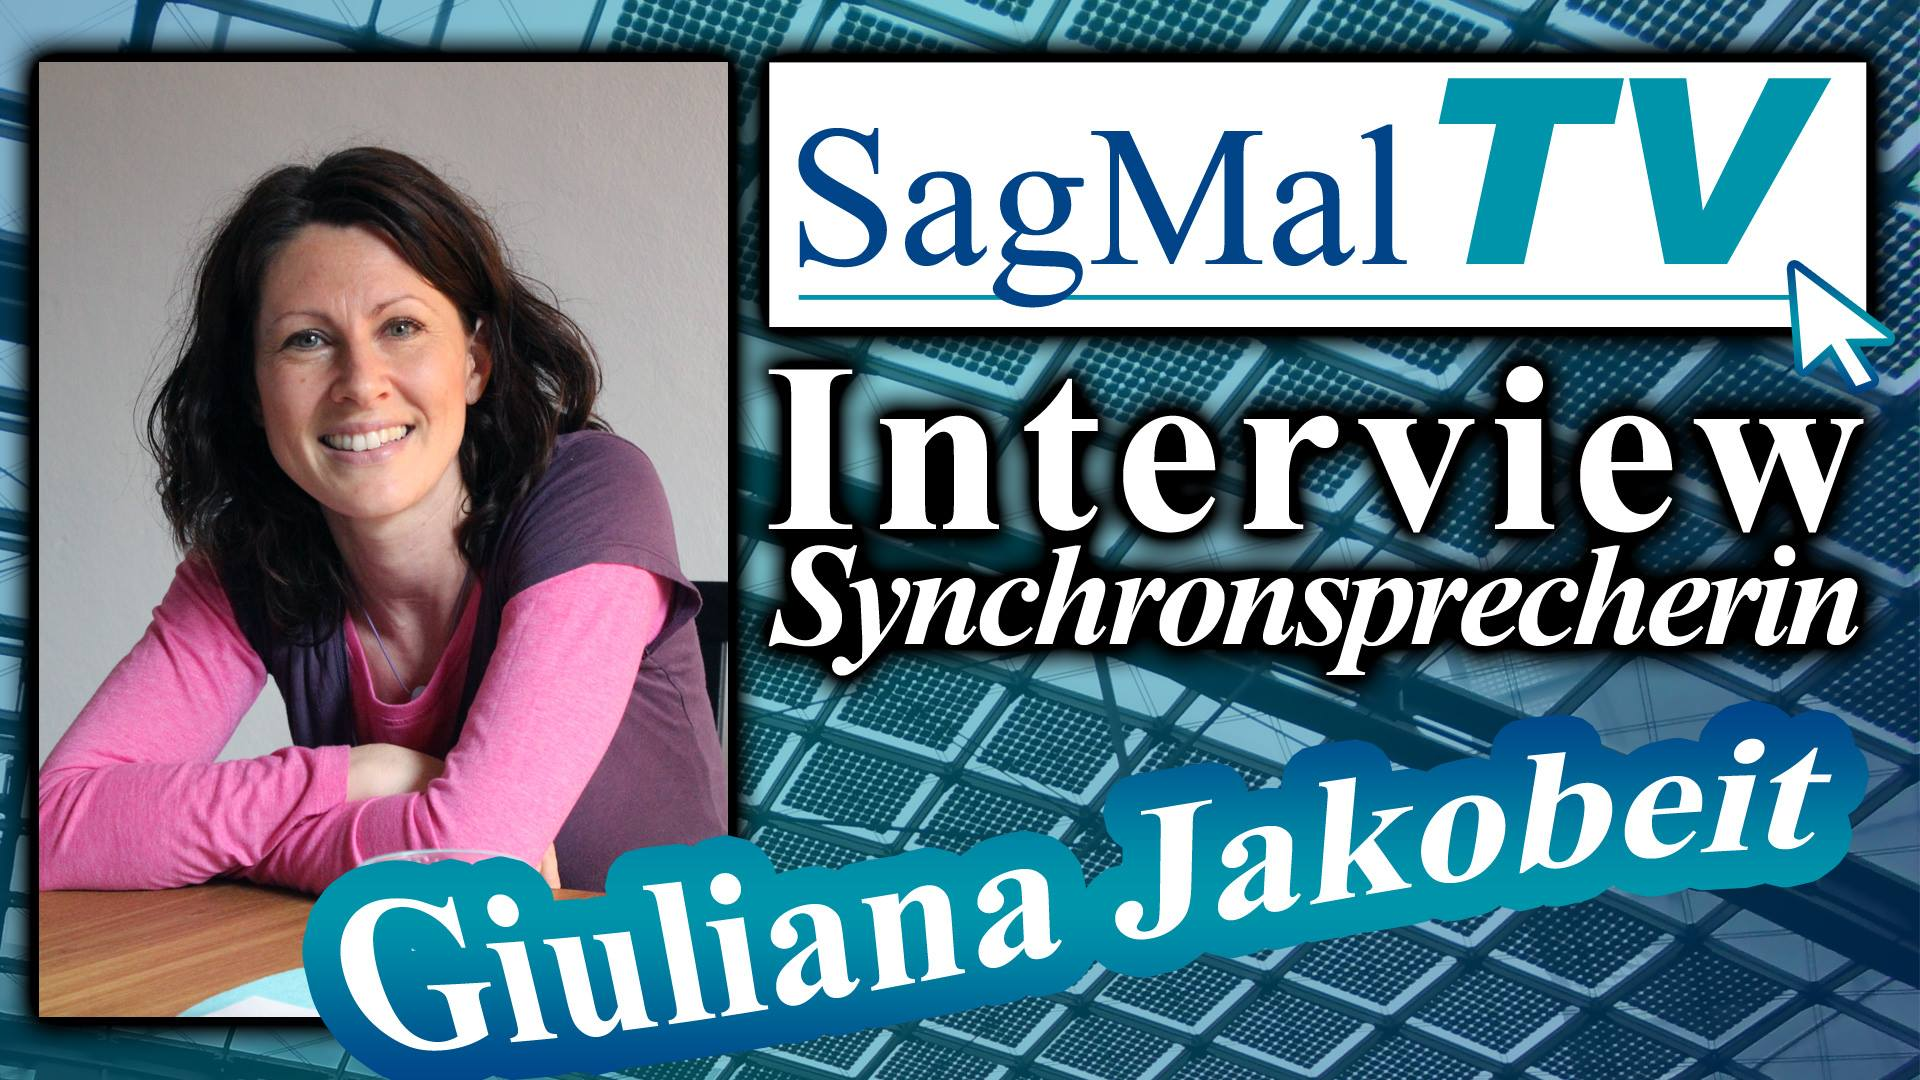 SagMalTV Synchronsprecherin Interview Giuliana Jakobeit Ran Mori